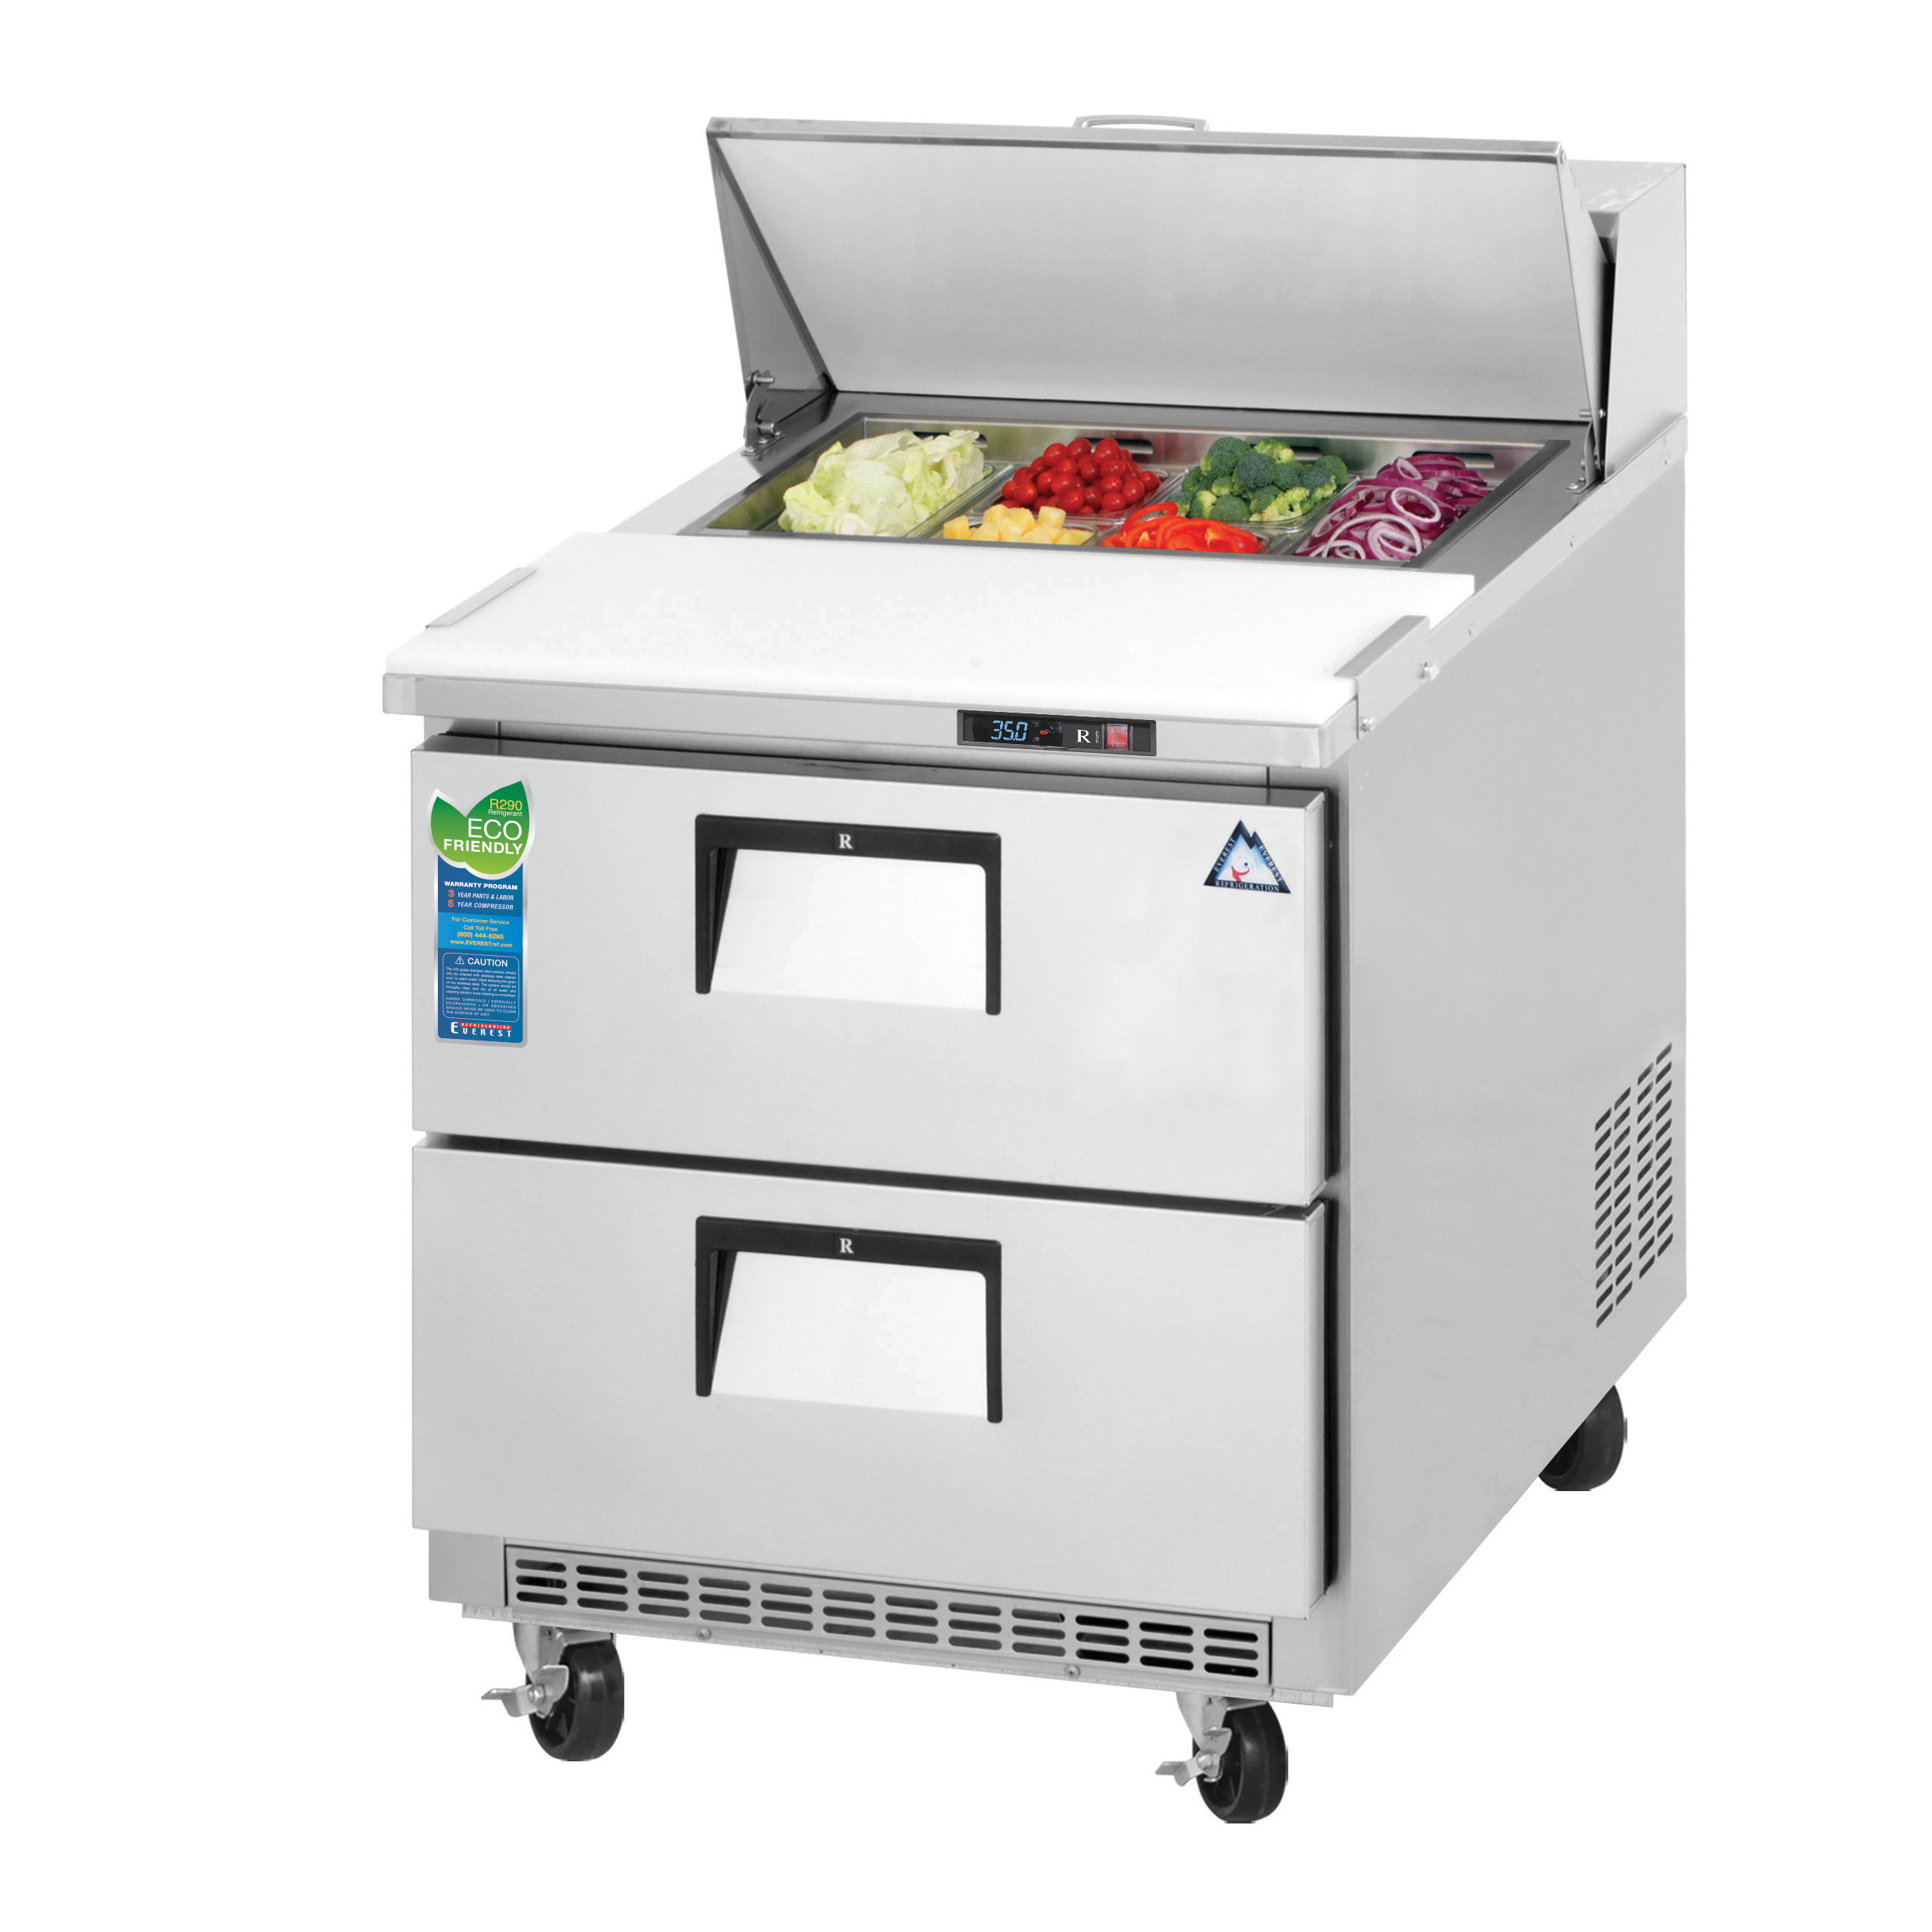 Everest Refrigeration EPBNR1-D2 refrigerated counter, sandwich / salad unit